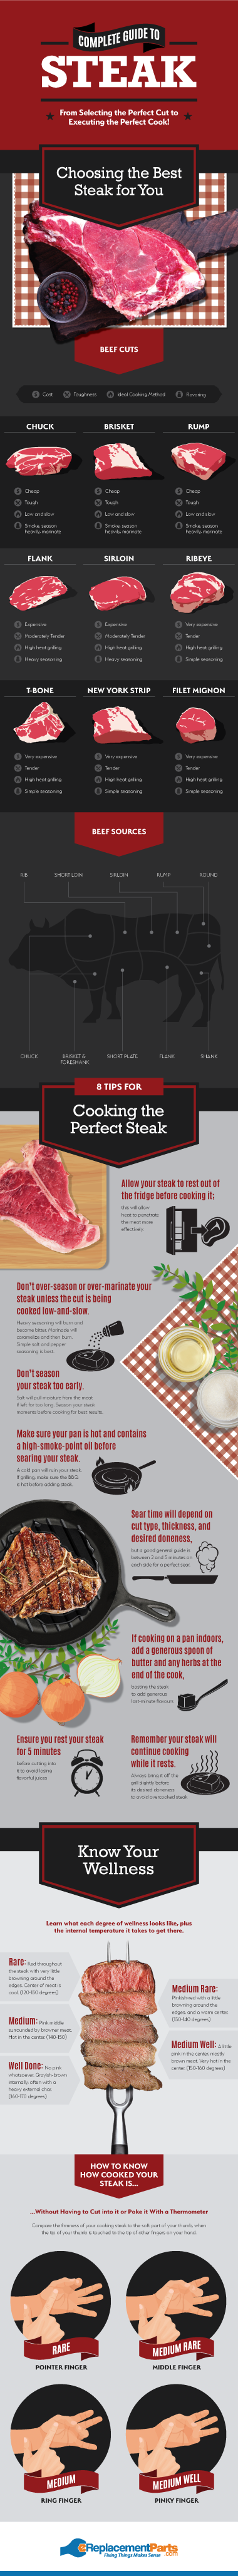 Tips for Choosing and Cooking Steak Perfectly